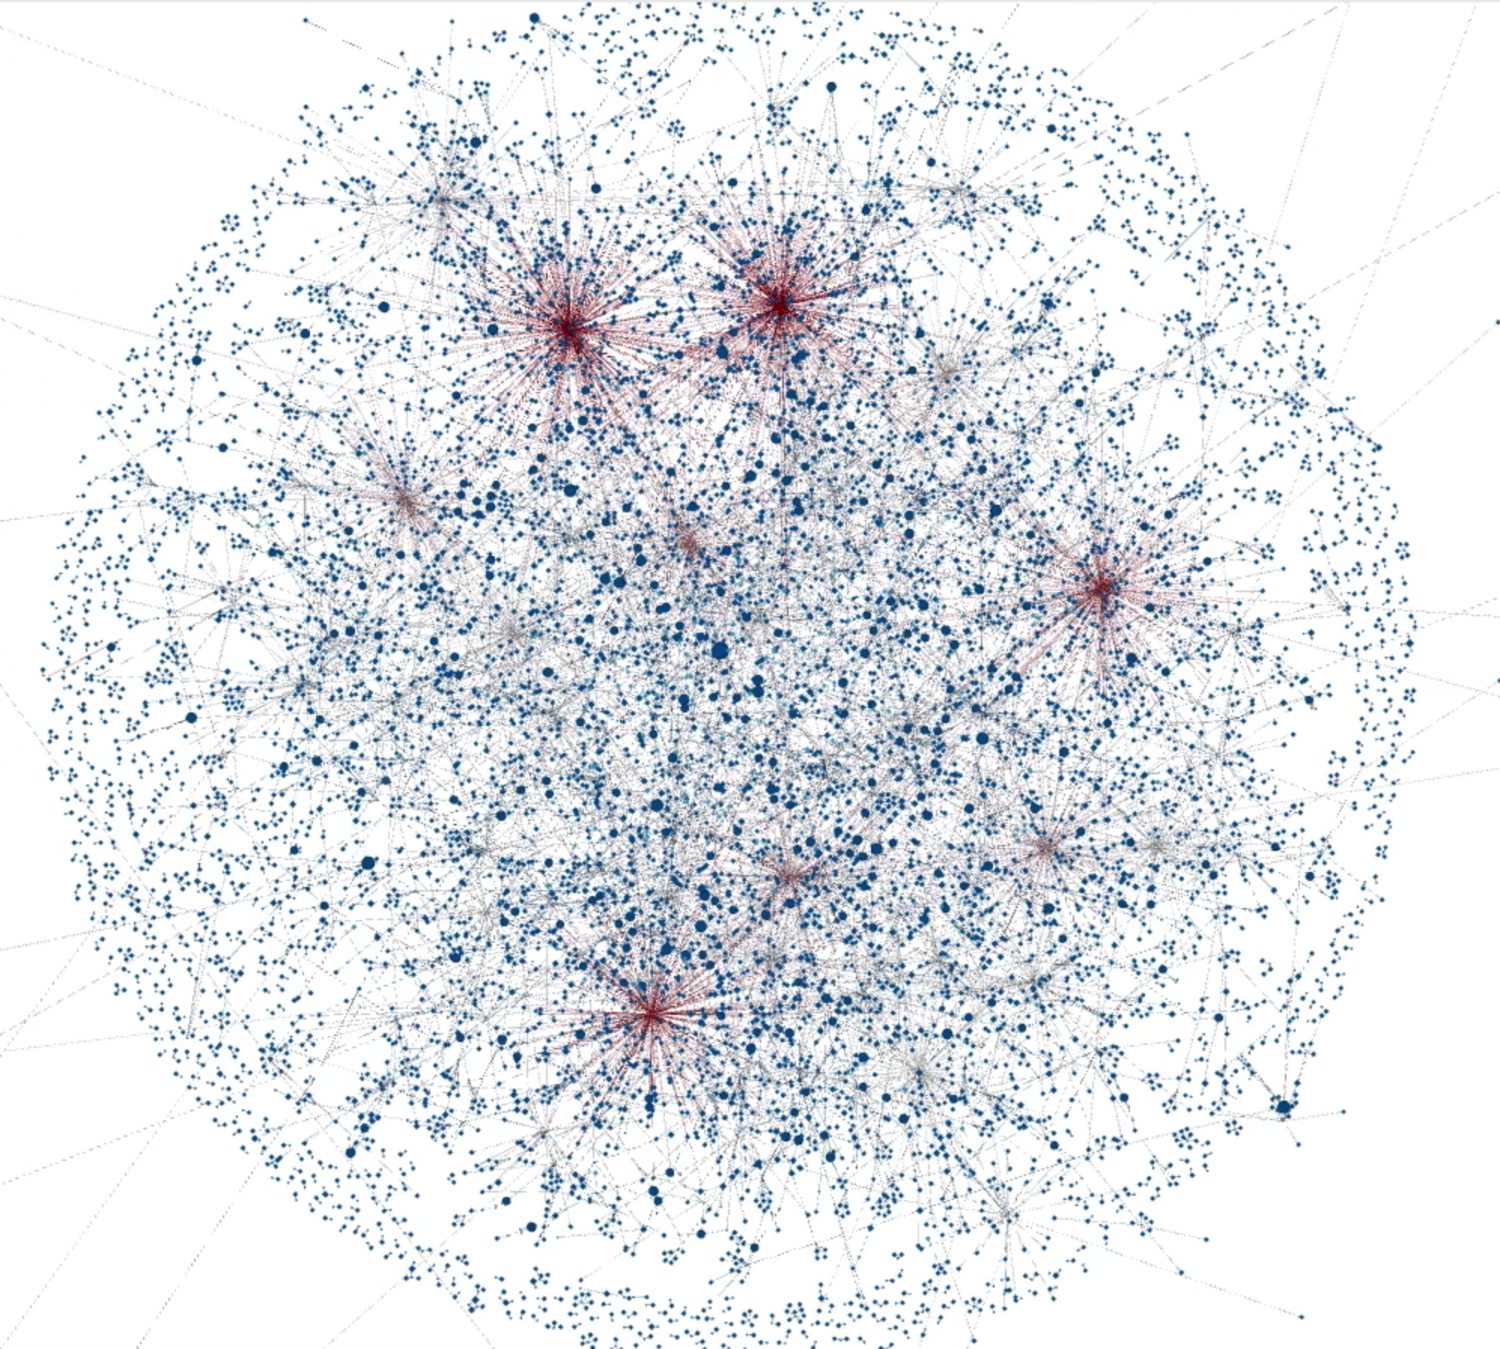 Realtime Visualization of Turkey's Gezi Parki Protest in Twitter Infographic